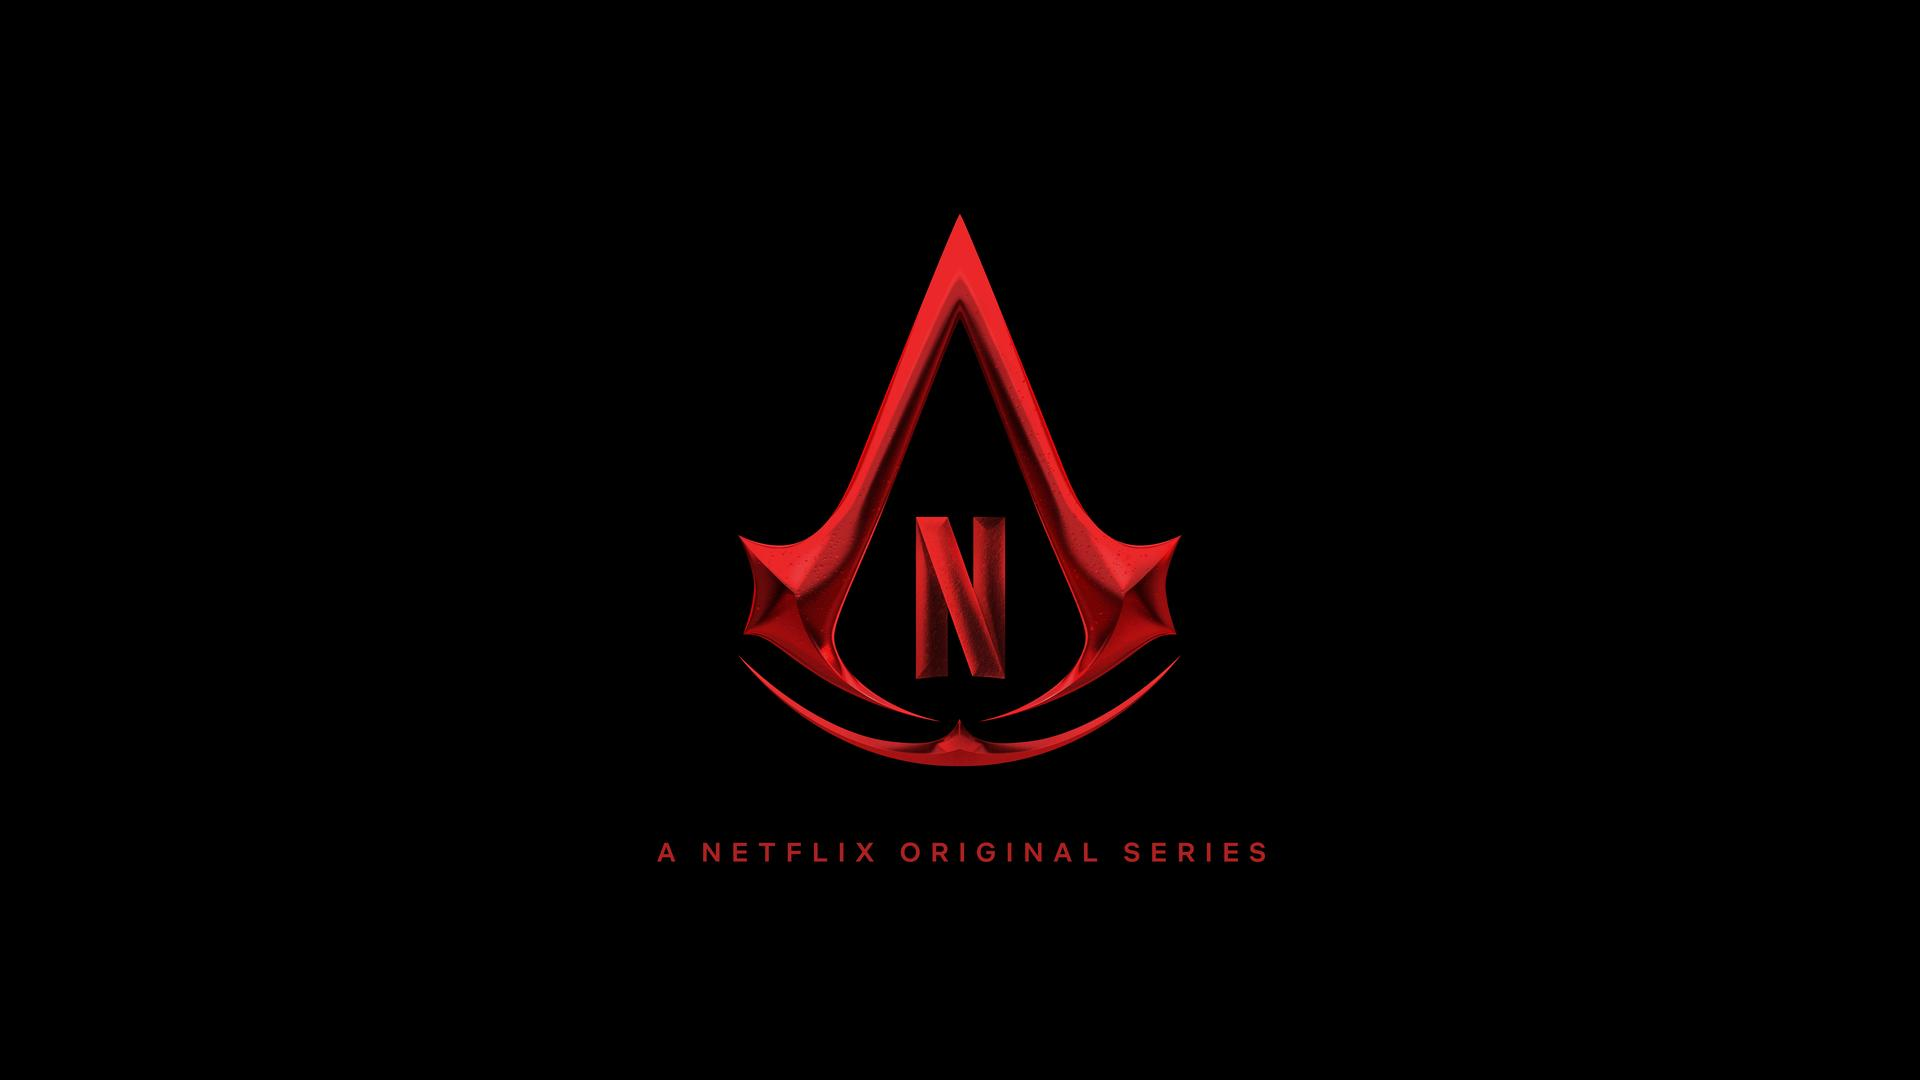 Netflix recently announced a number of video game adaptations, including an Assassin's Creed series.